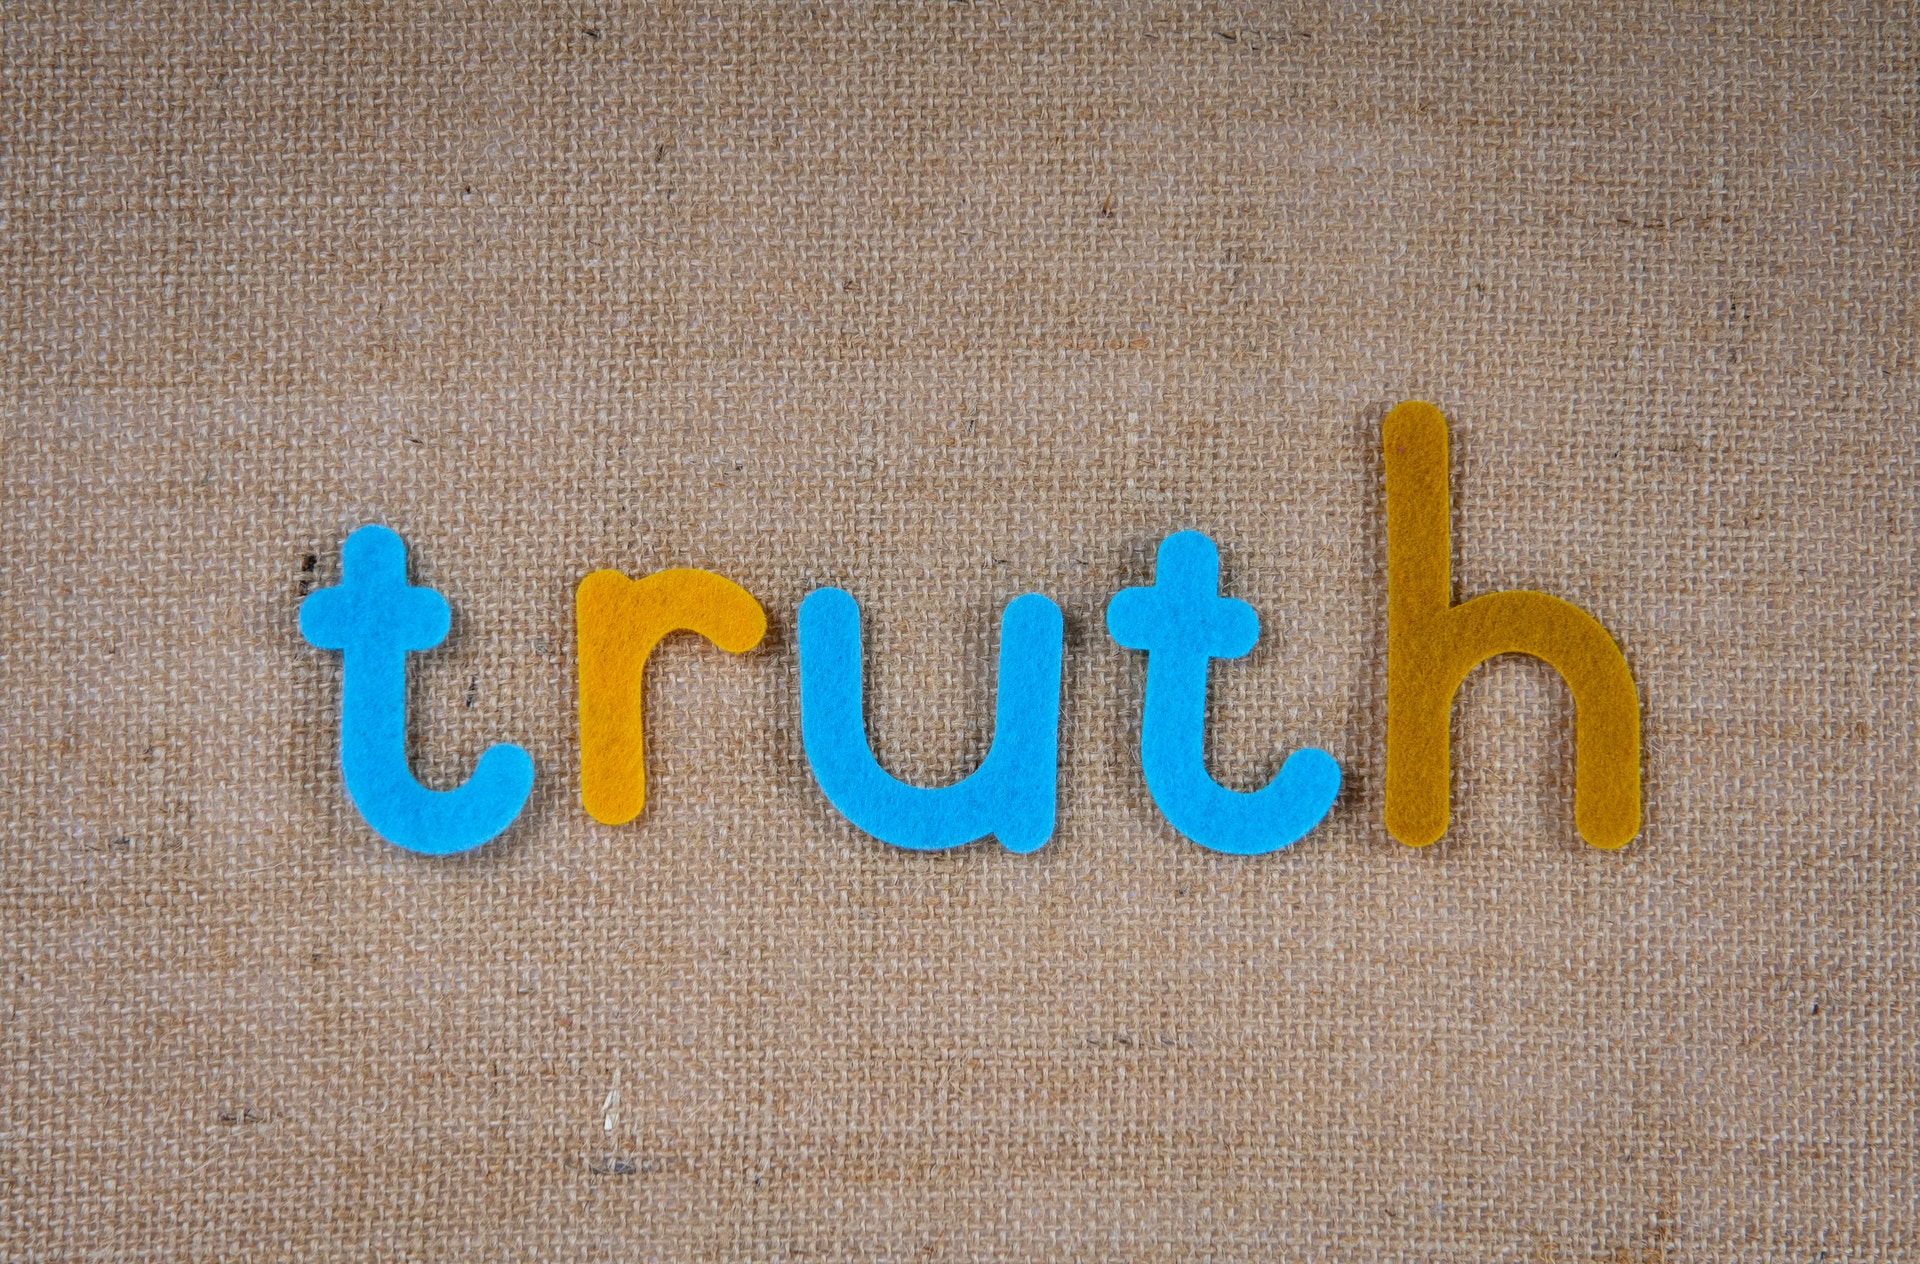 10 brutal truth about web development